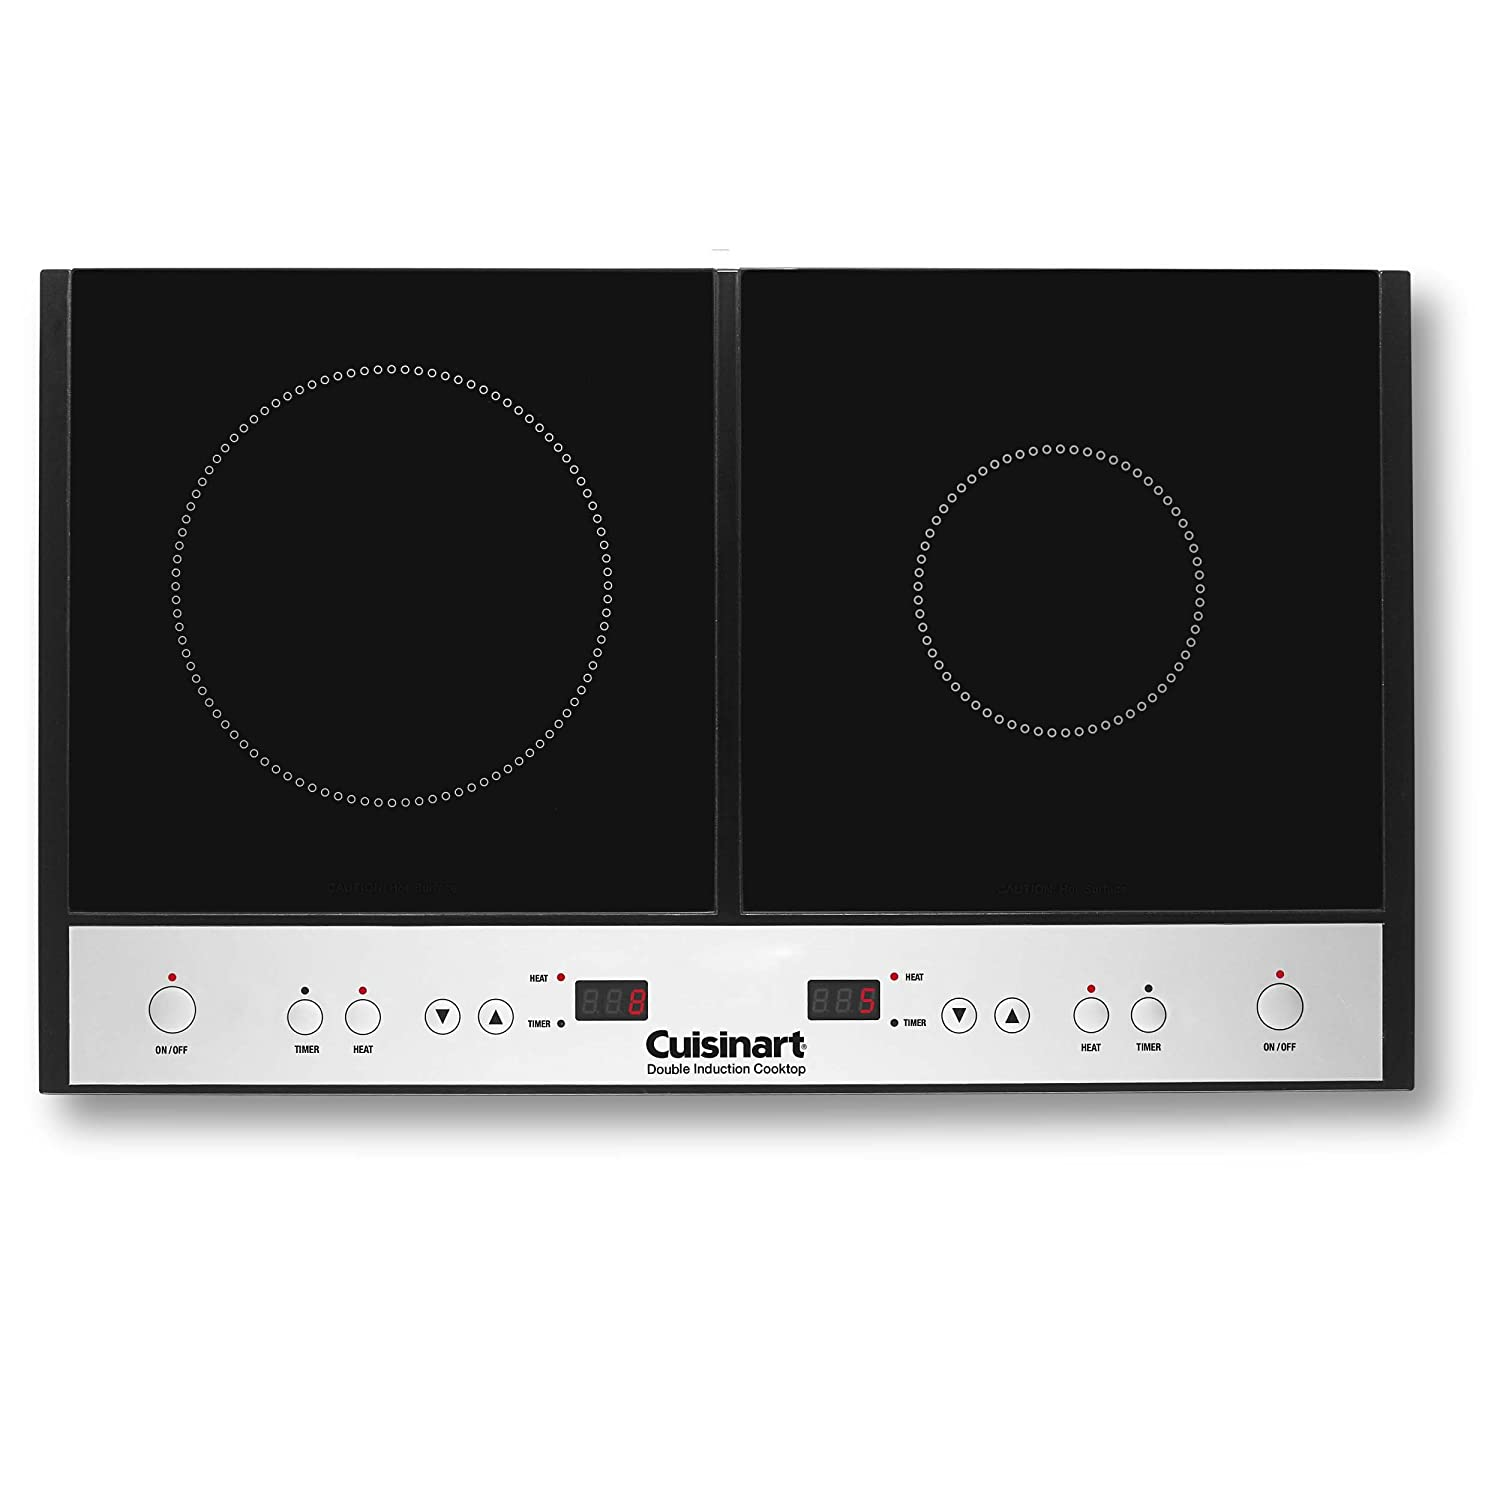 Cuisinart ICT-60 Double Induction Cooktop, Black - Best Induction Cooktop